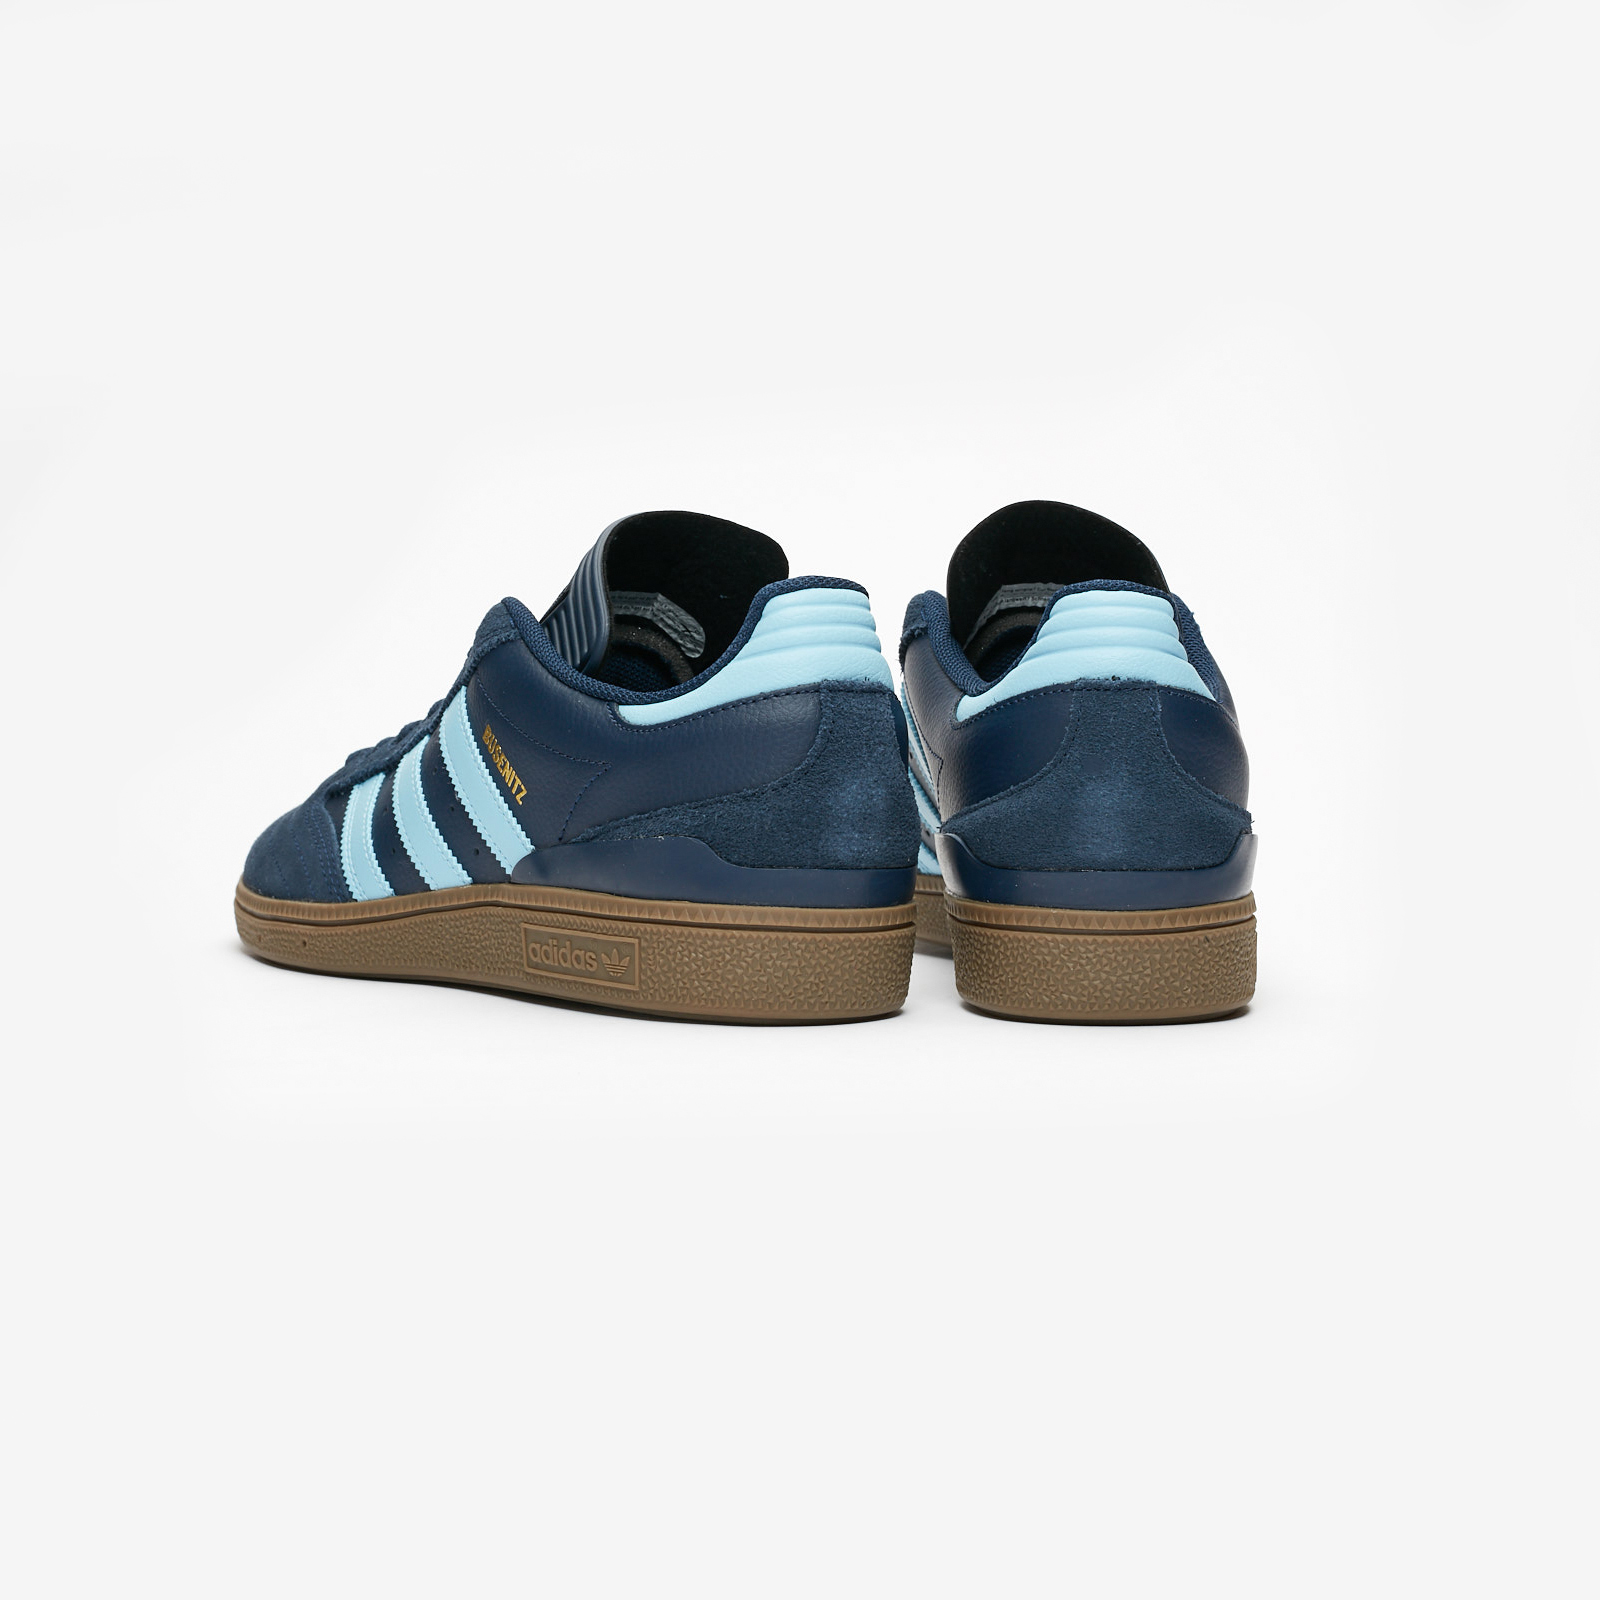 huge selection of 23f8a bed73 adidas Skateboarding Busenitz adidas Skateboarding Busenitz ...